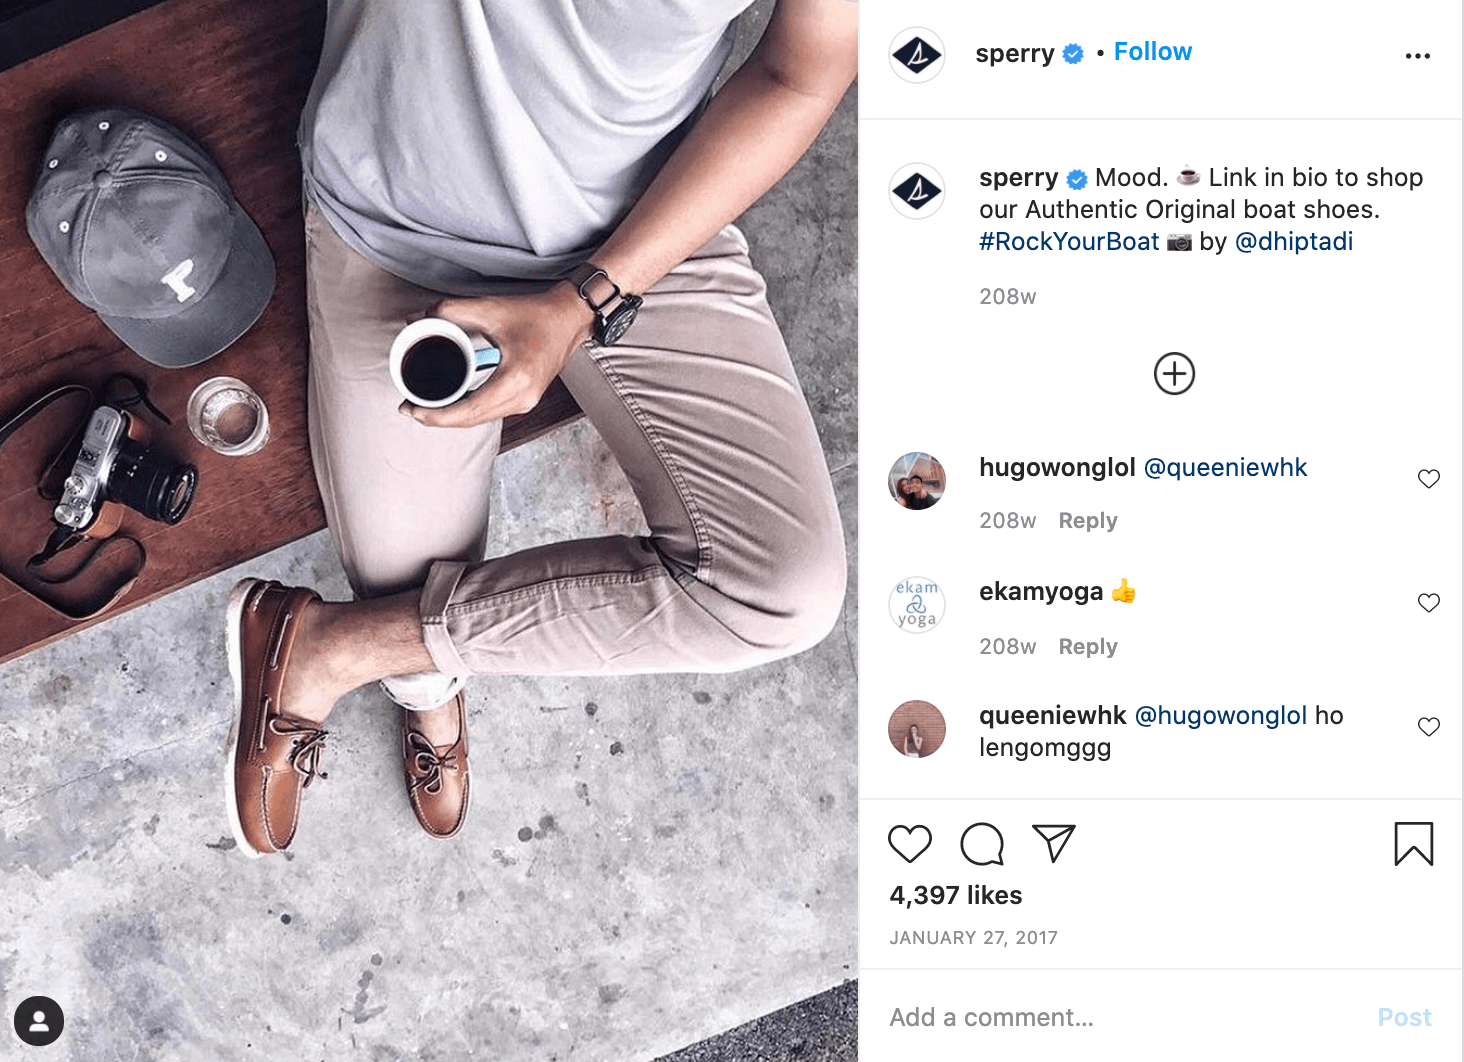 micromarketing example with sperry